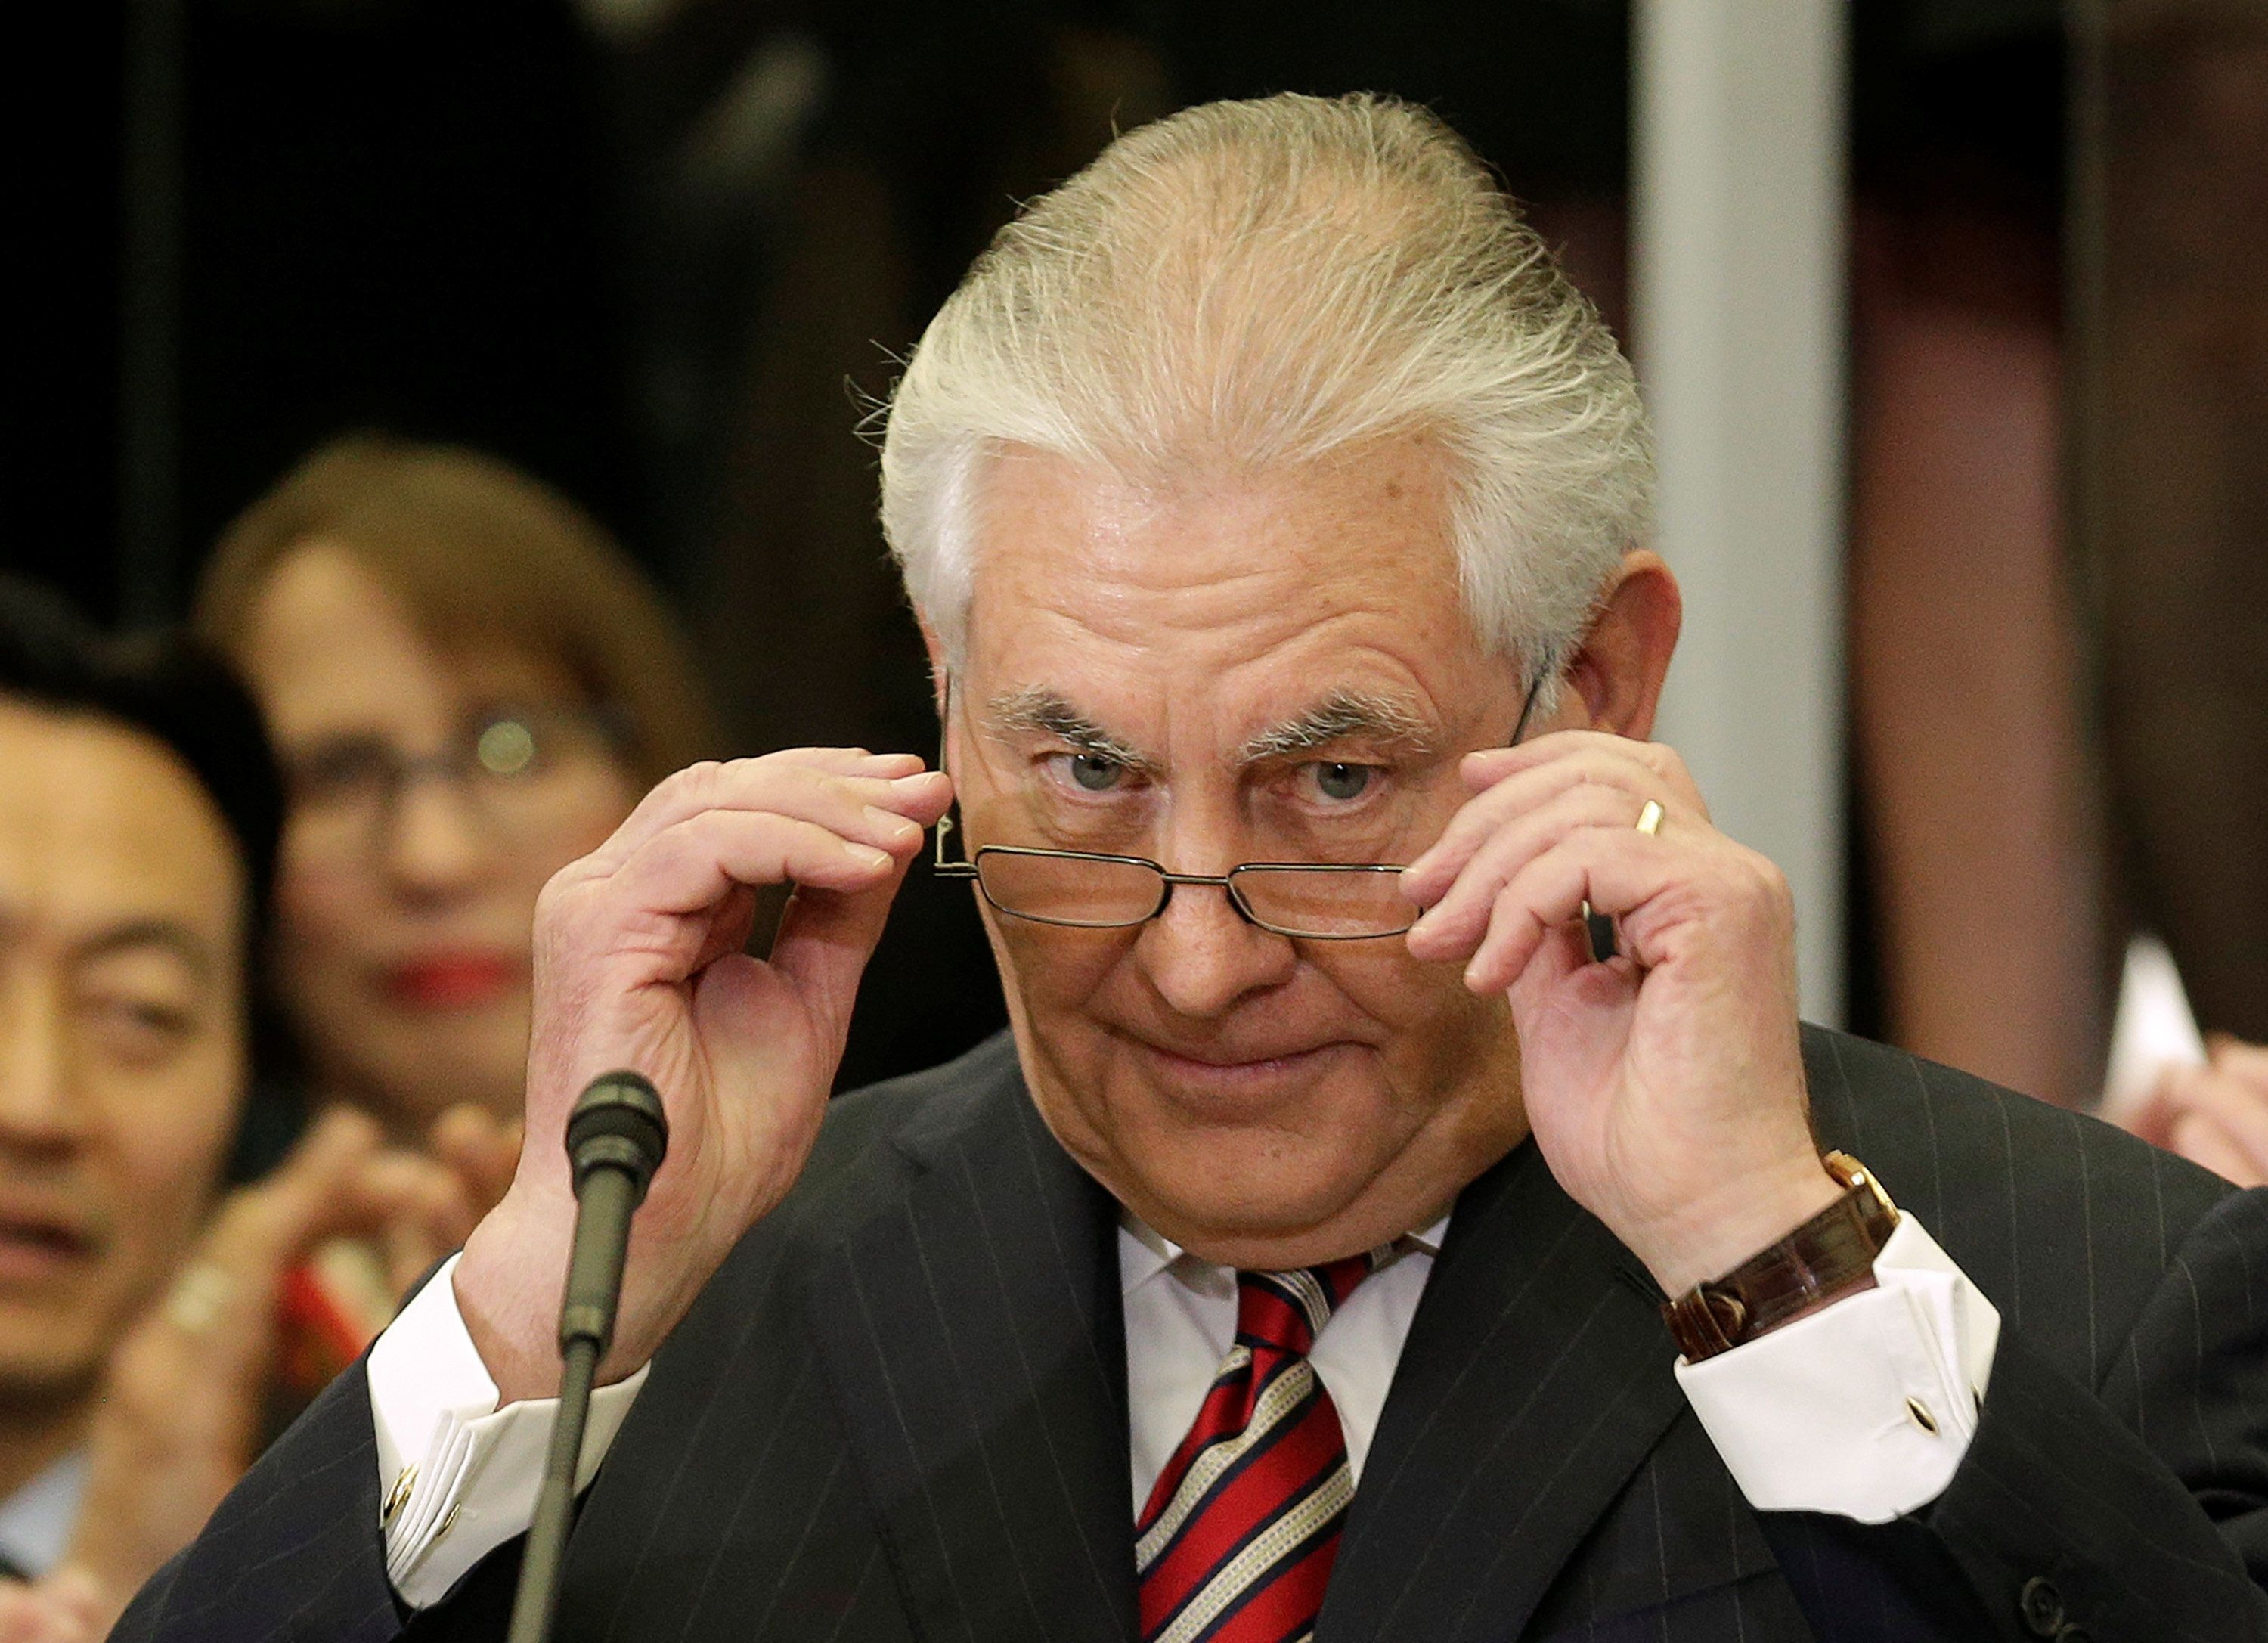 A report in the Washington Post says some people who work for Secretary of State Rex Tillersonhave been told not to mak